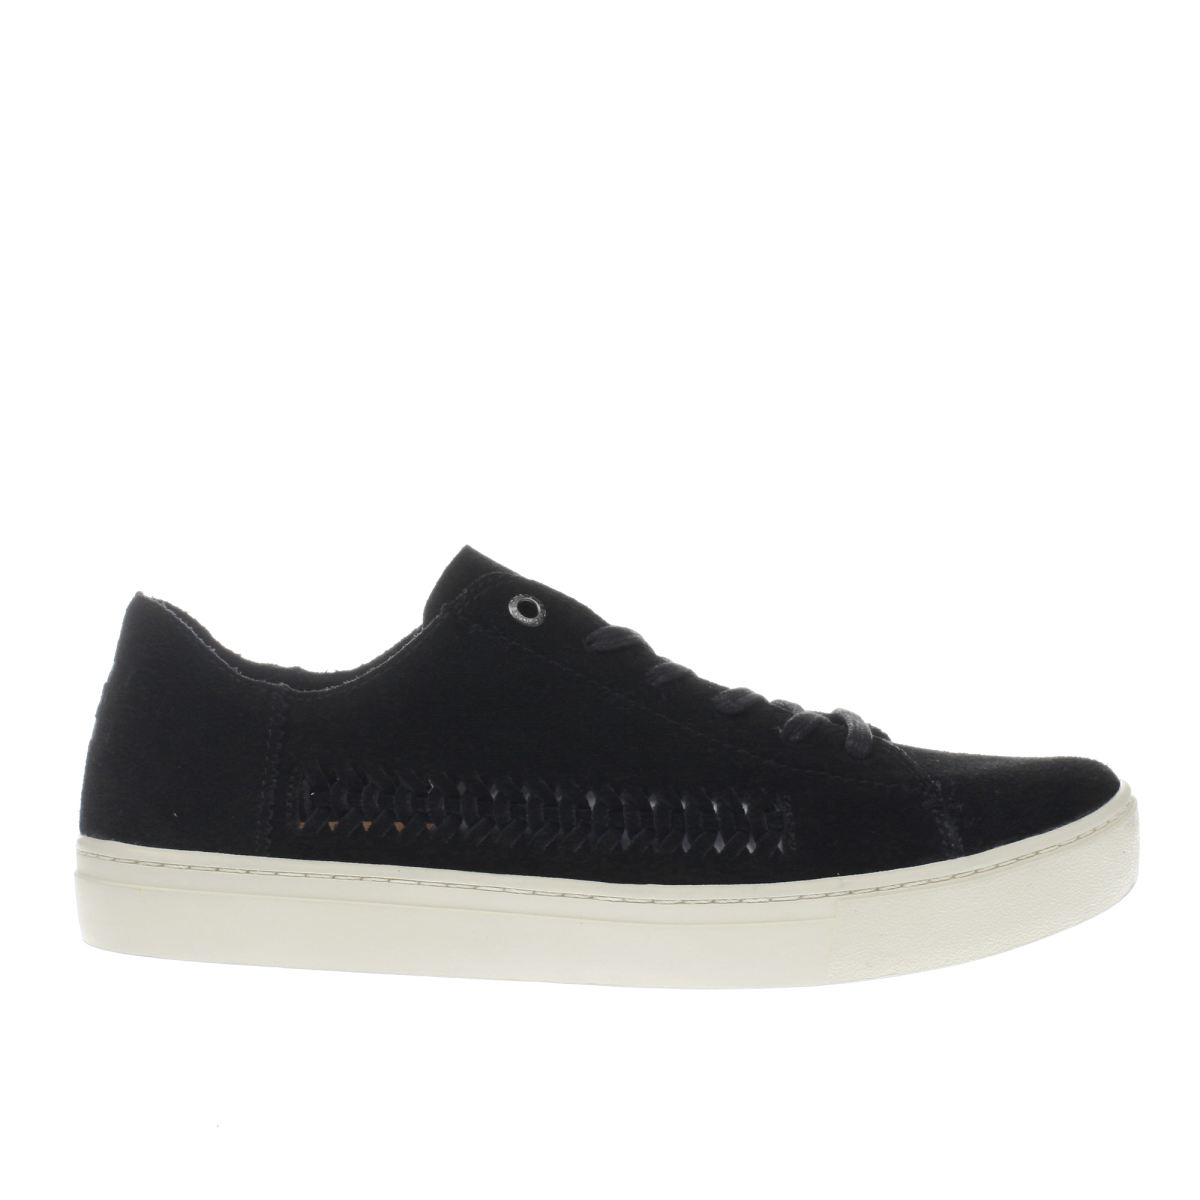 toms black lenox flat shoes